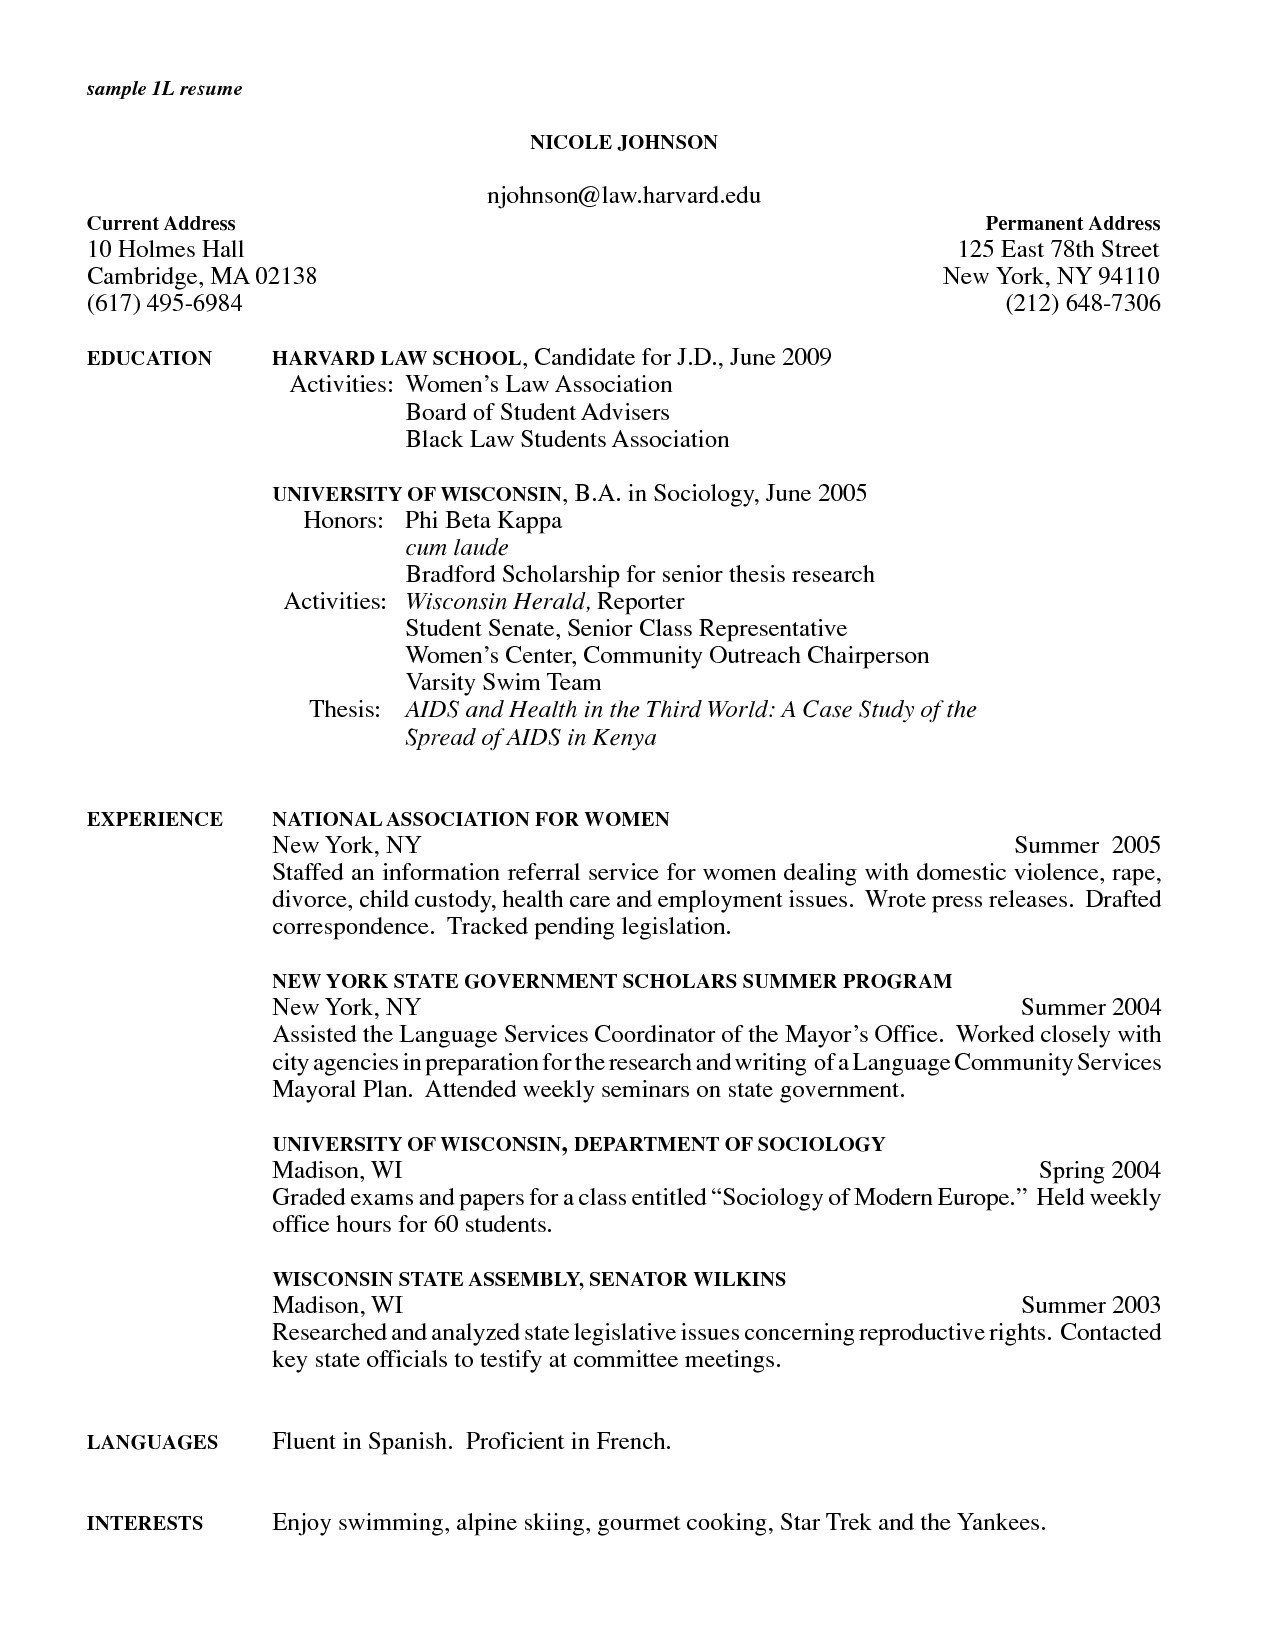 Pastoral Resume Template - Pastor Resume Template Unique Beautiful Pastor Resume Template